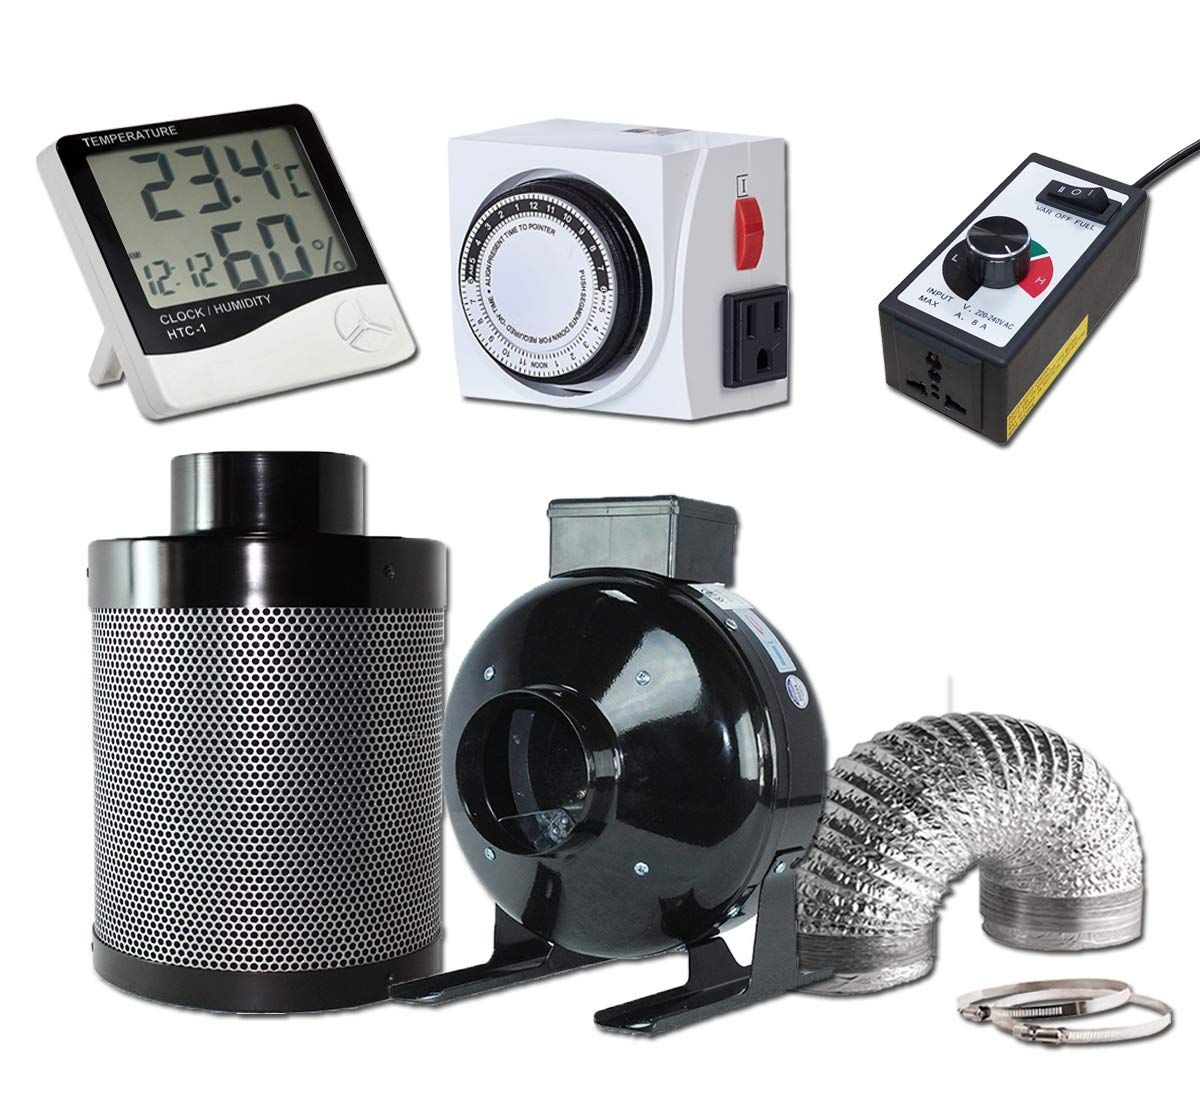 Greenhouser Hydroponics 4 Inch Carbon Air Filter And Inline Fan 25 Feet Ducting With Speed Controller 24 Hour Timer Hygr Carbon Air Filter Combo Kit Inline Fan